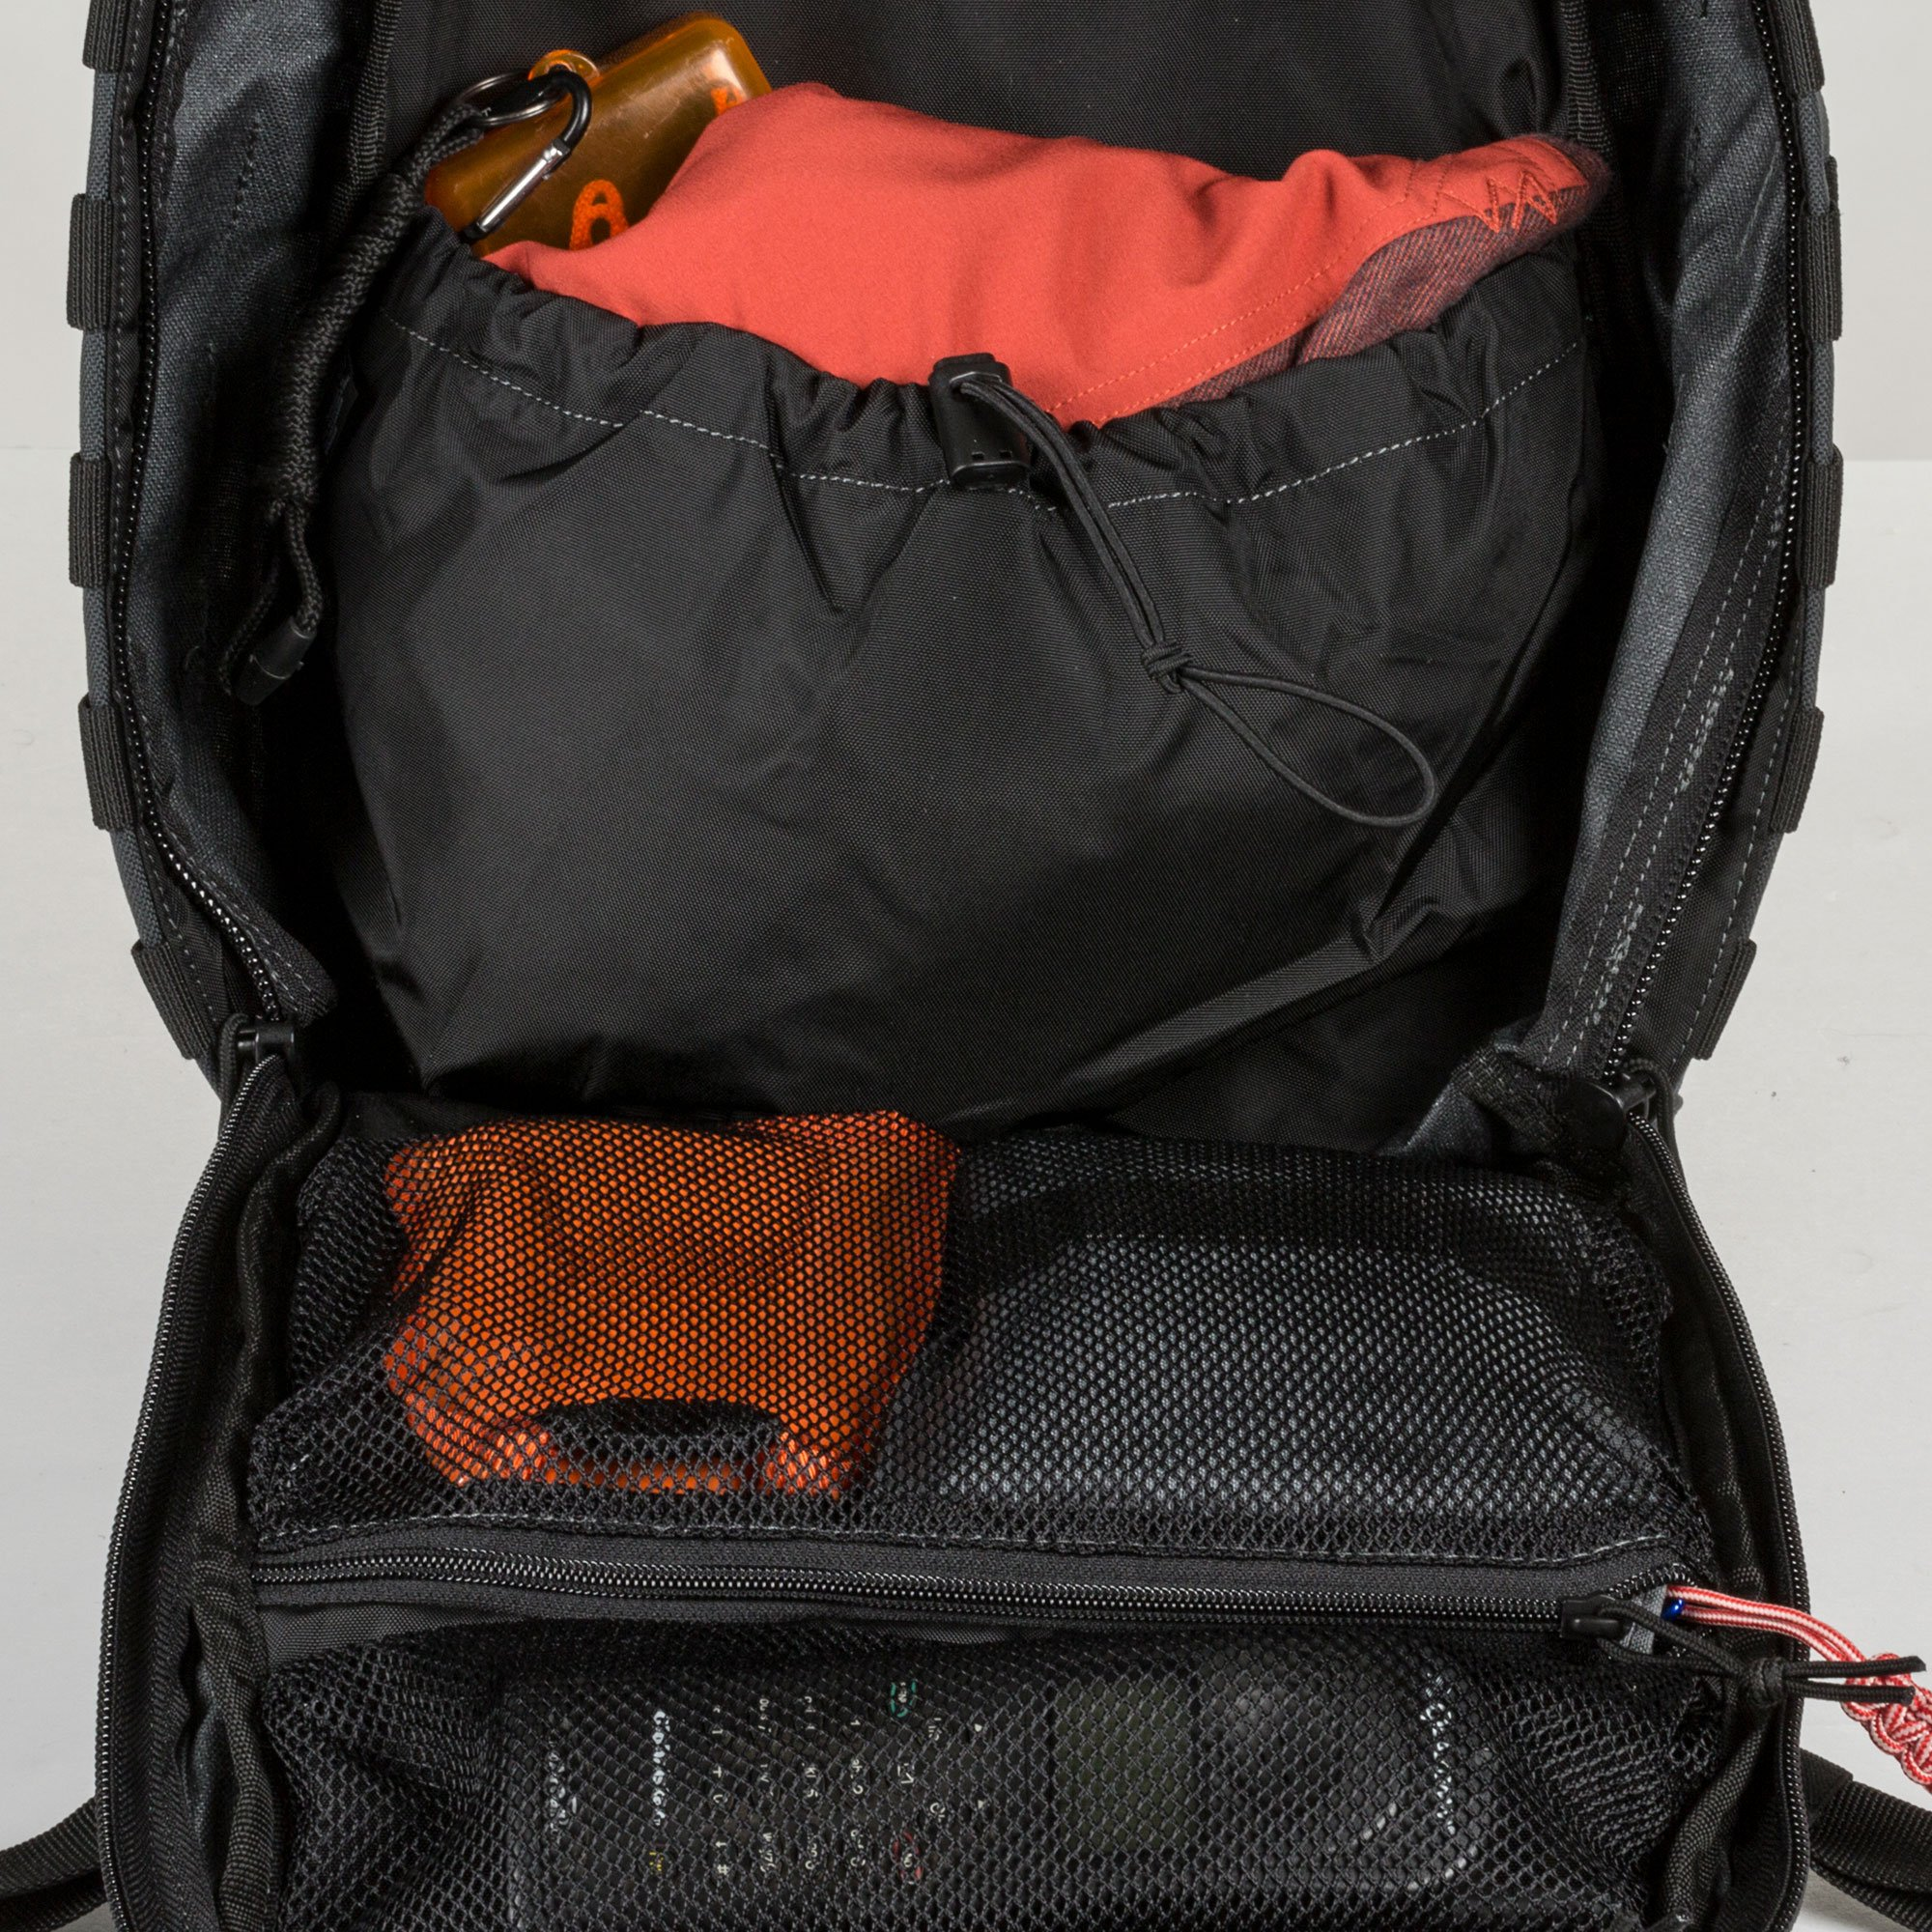 5.11 RUSH12 Tactical Military Assault Molle Backpack, Bug Out Rucksack Bag, Small, Style 56892, Black by 5.11 (Image #9)